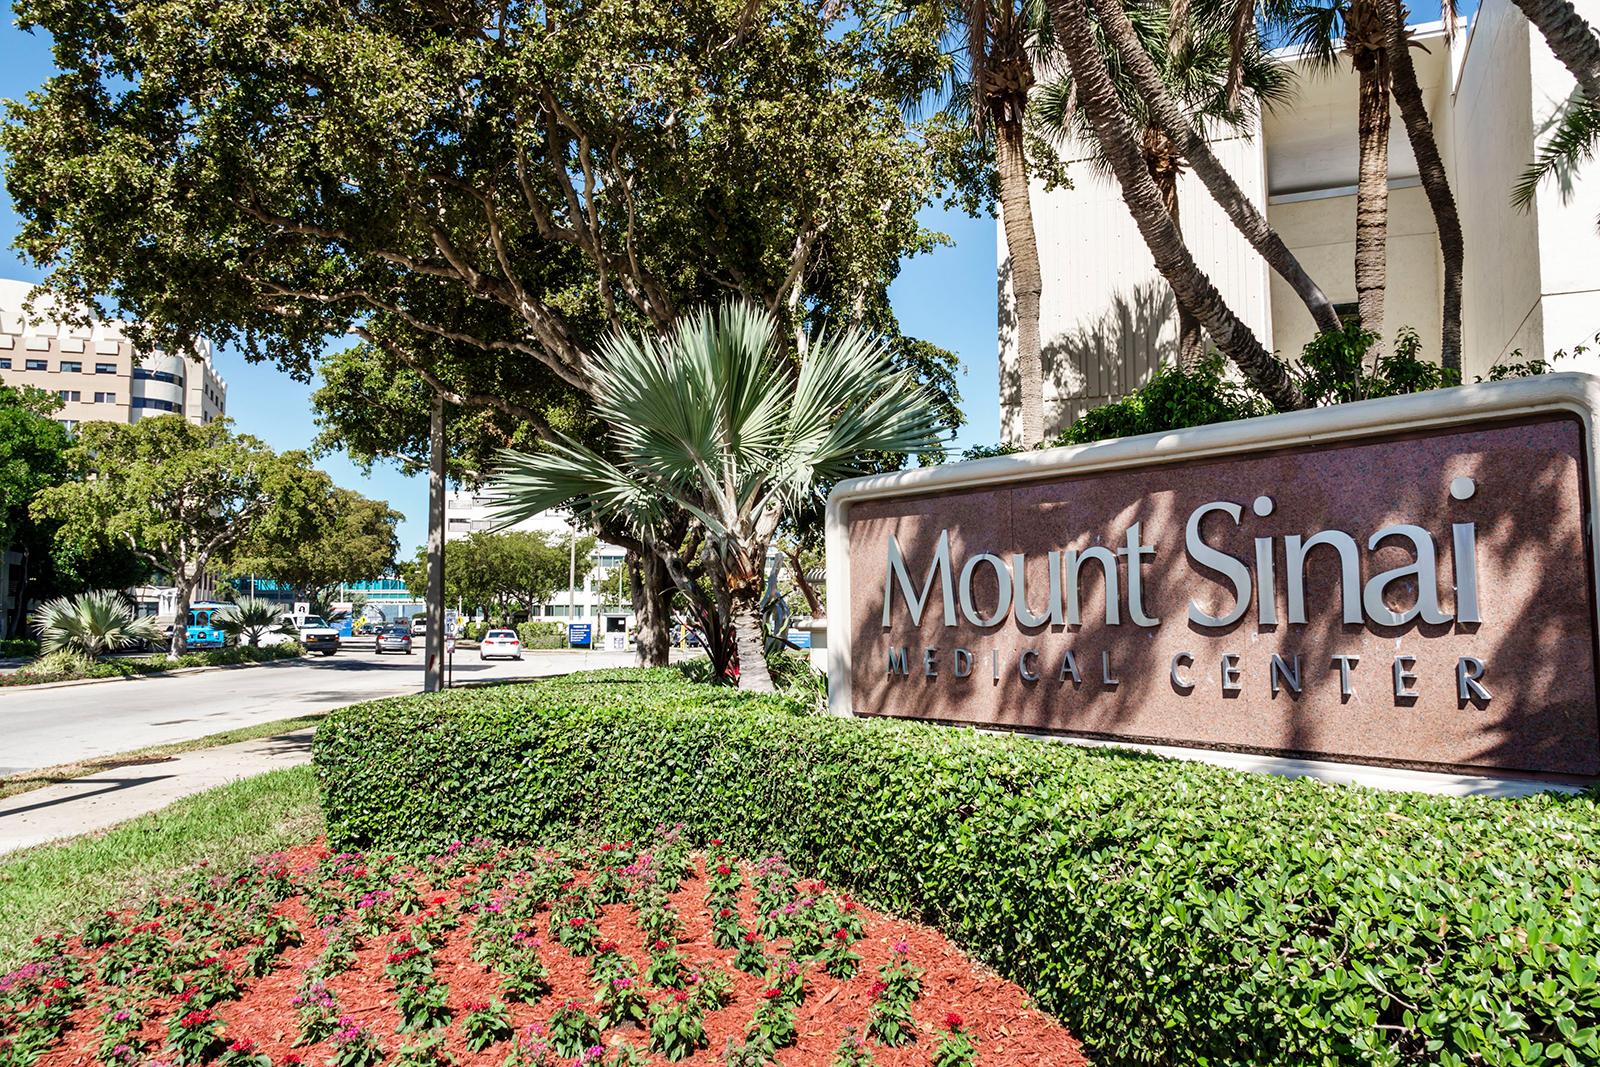 A sign for Mount Sinai Medical Center is seen in Miami Beach, Florida.